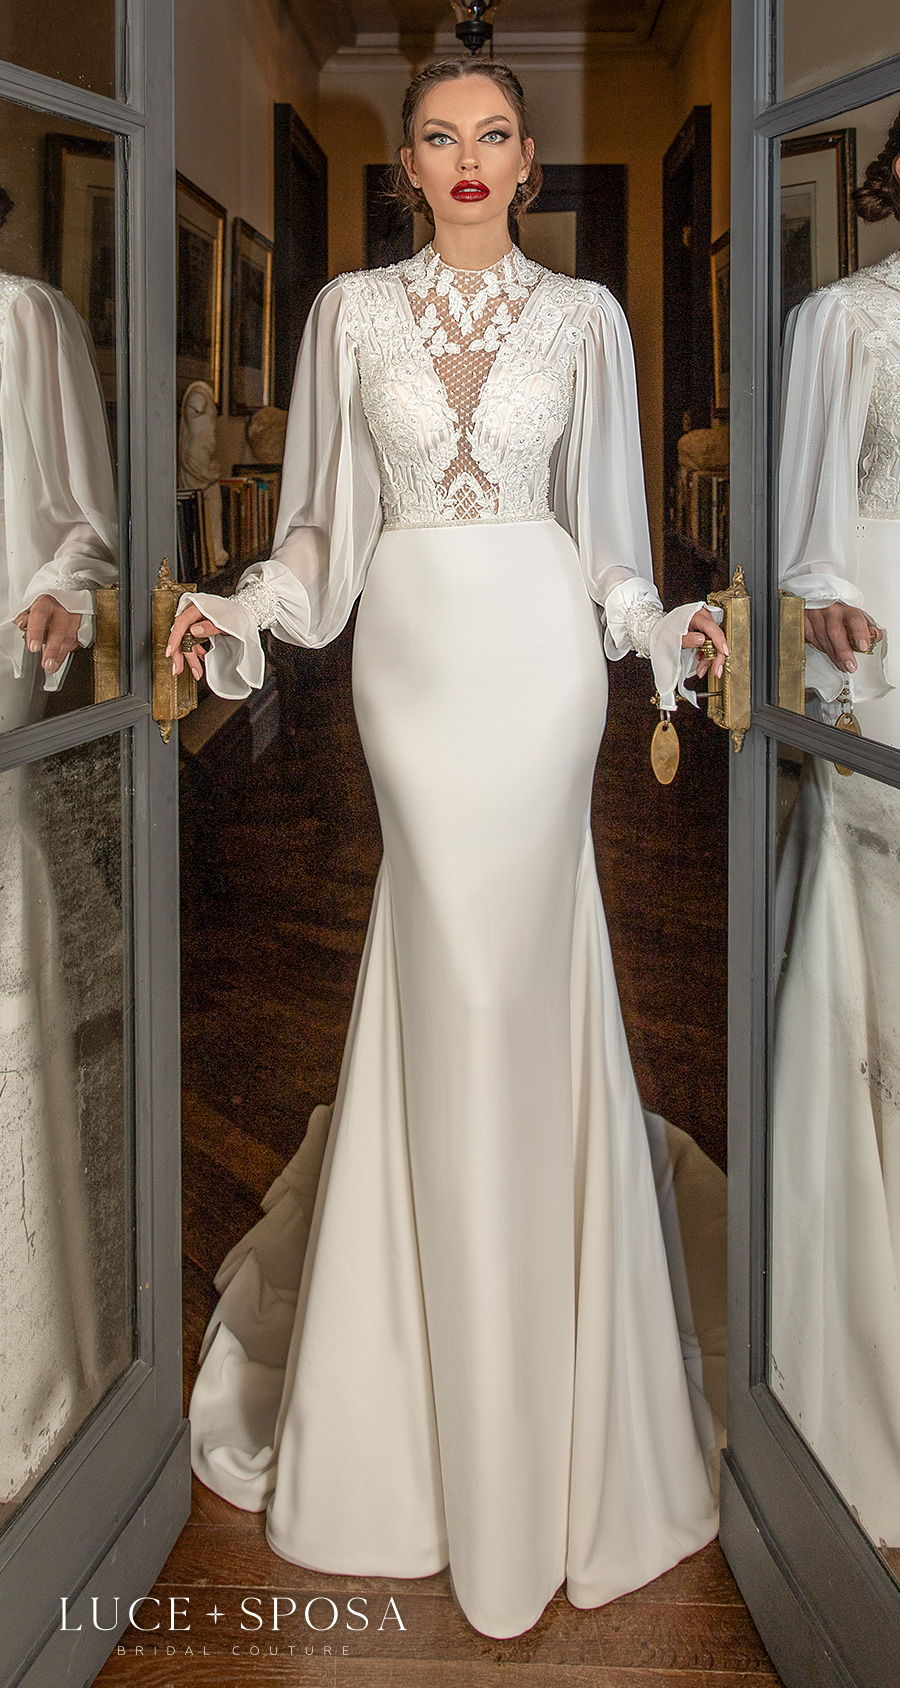 luce sposa 2021 sorrento bridal long poet sleeves illusion high neck v neck heavily embellished bodice art deco vintage sheath weding dress keyhole back medium train (ida) mv